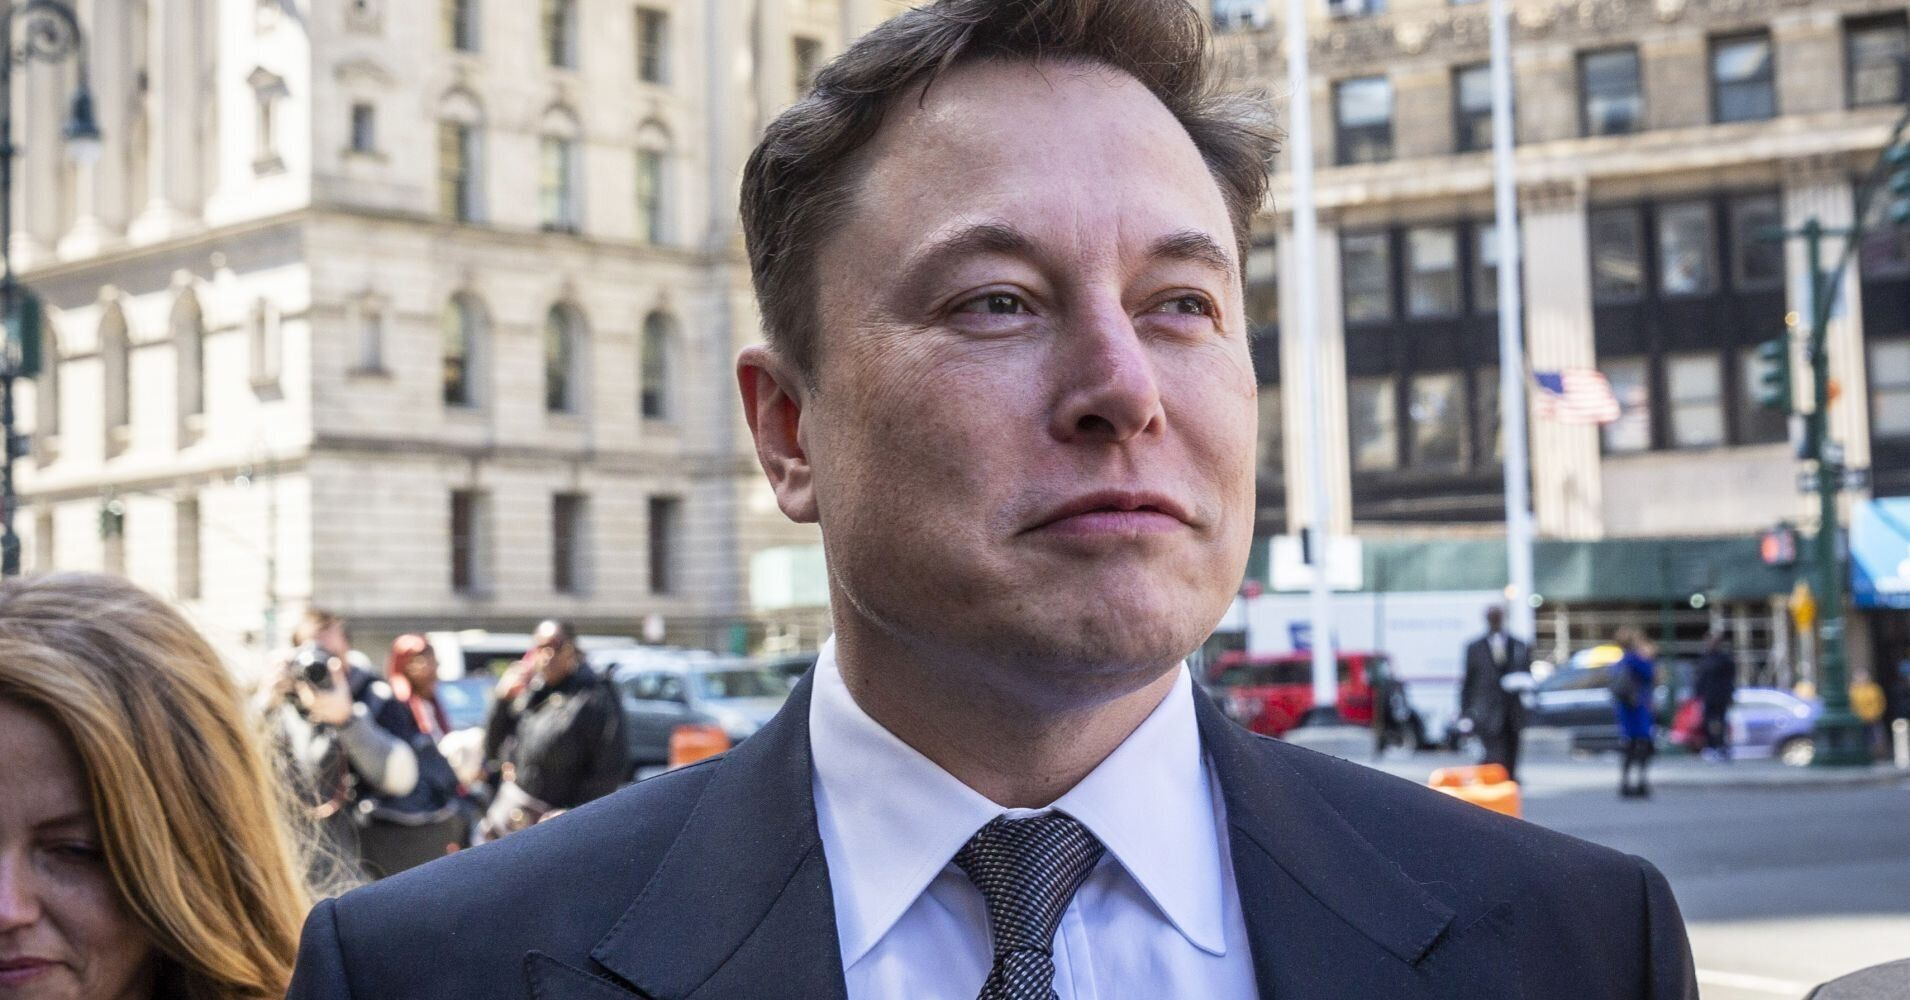 Tesla CEO Elon Musk and the Securities and Exchange Commission have settled a dispute over Musk's use of Twitter.